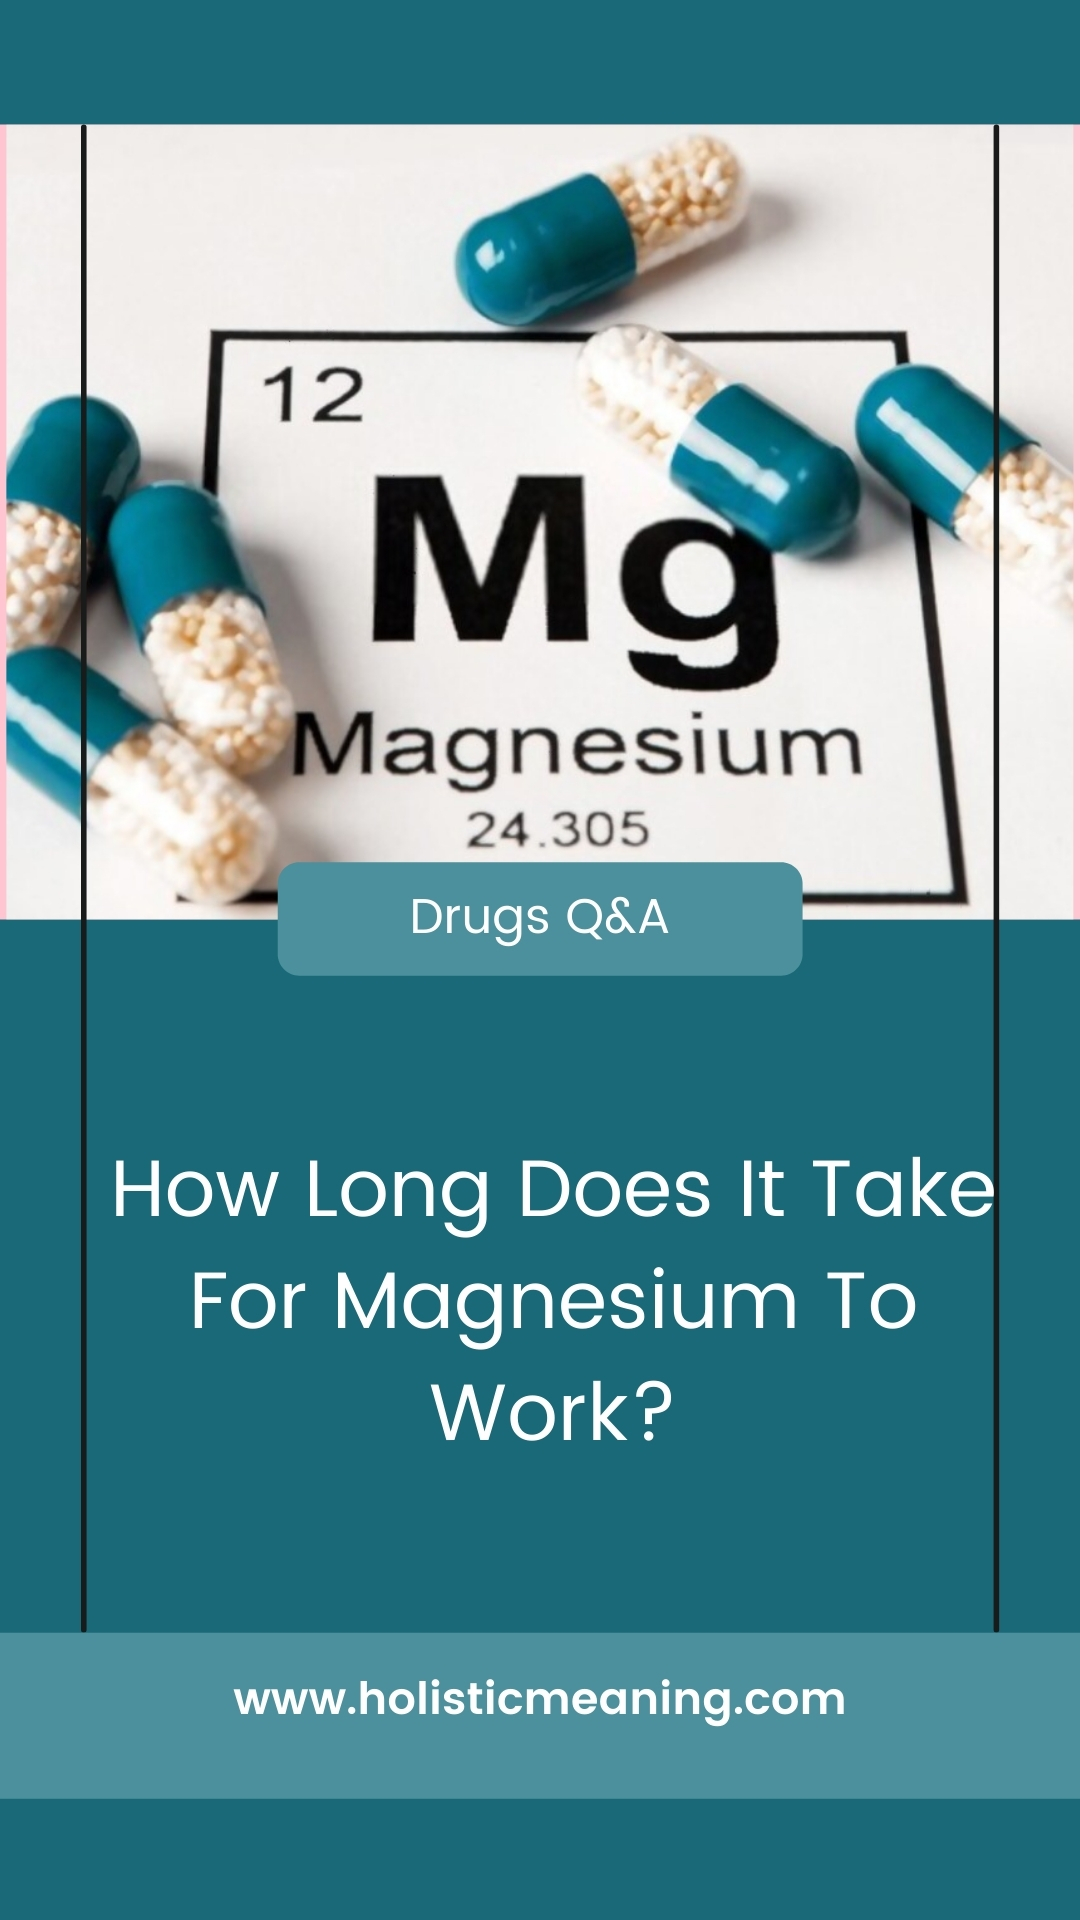 How Long Does It Take For Magnesium To Work?